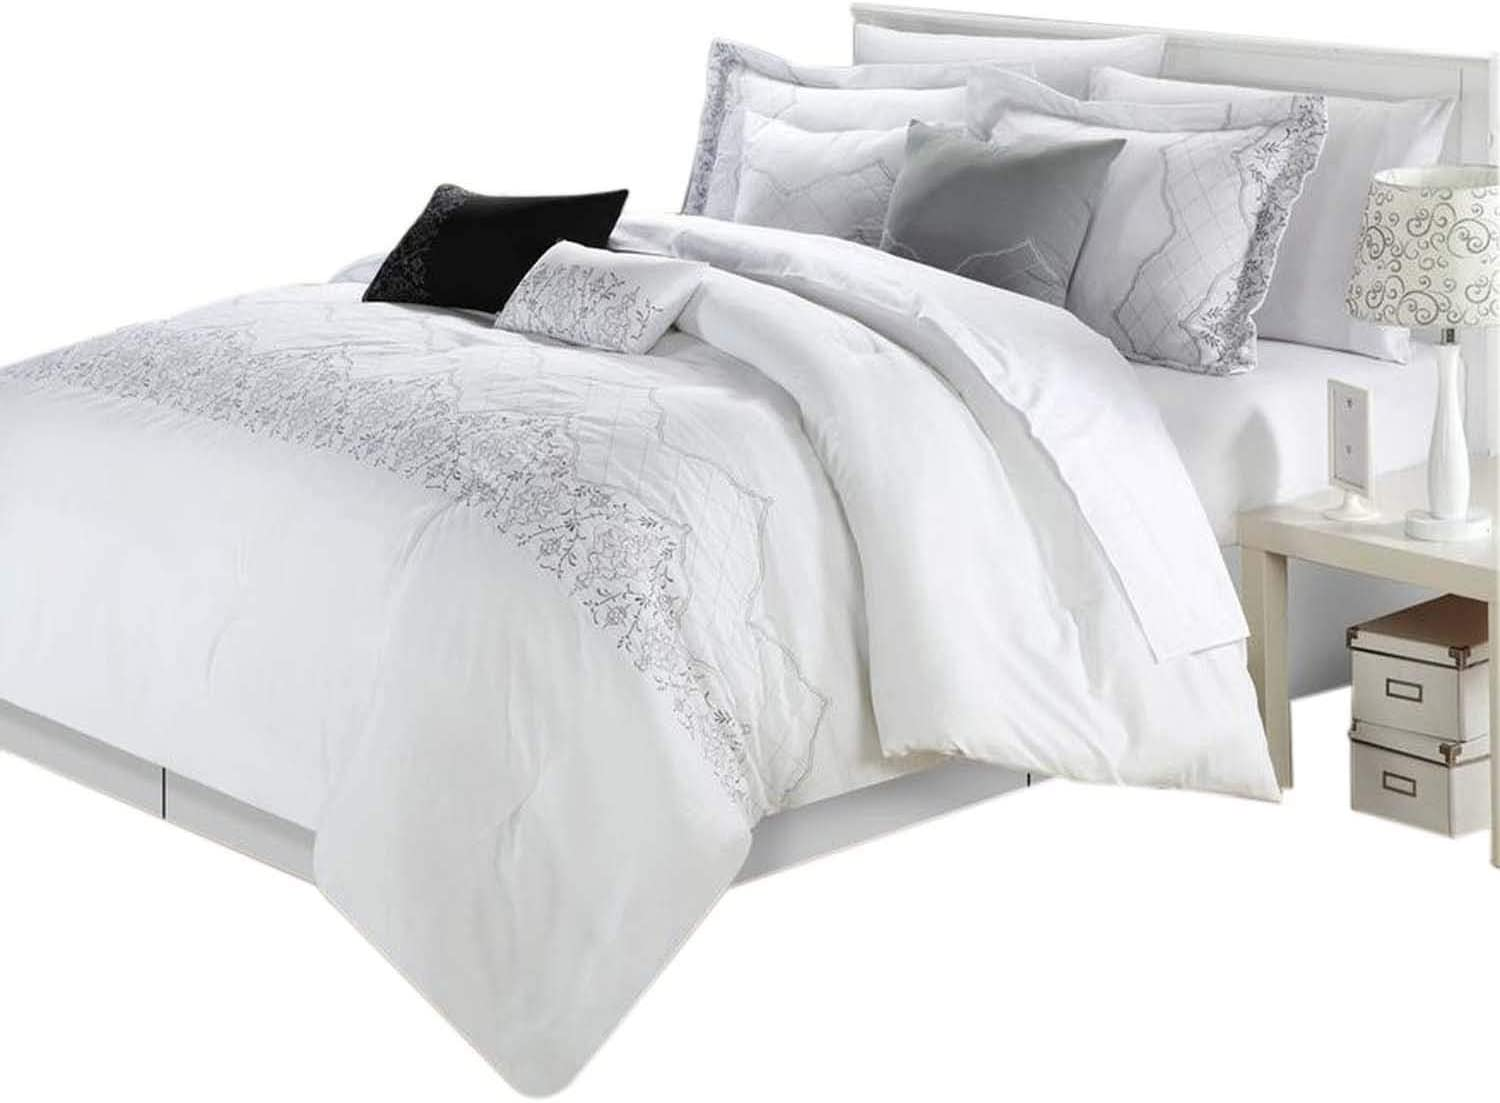 Chic Home Grace 8-Piece Comforter Set, King, White